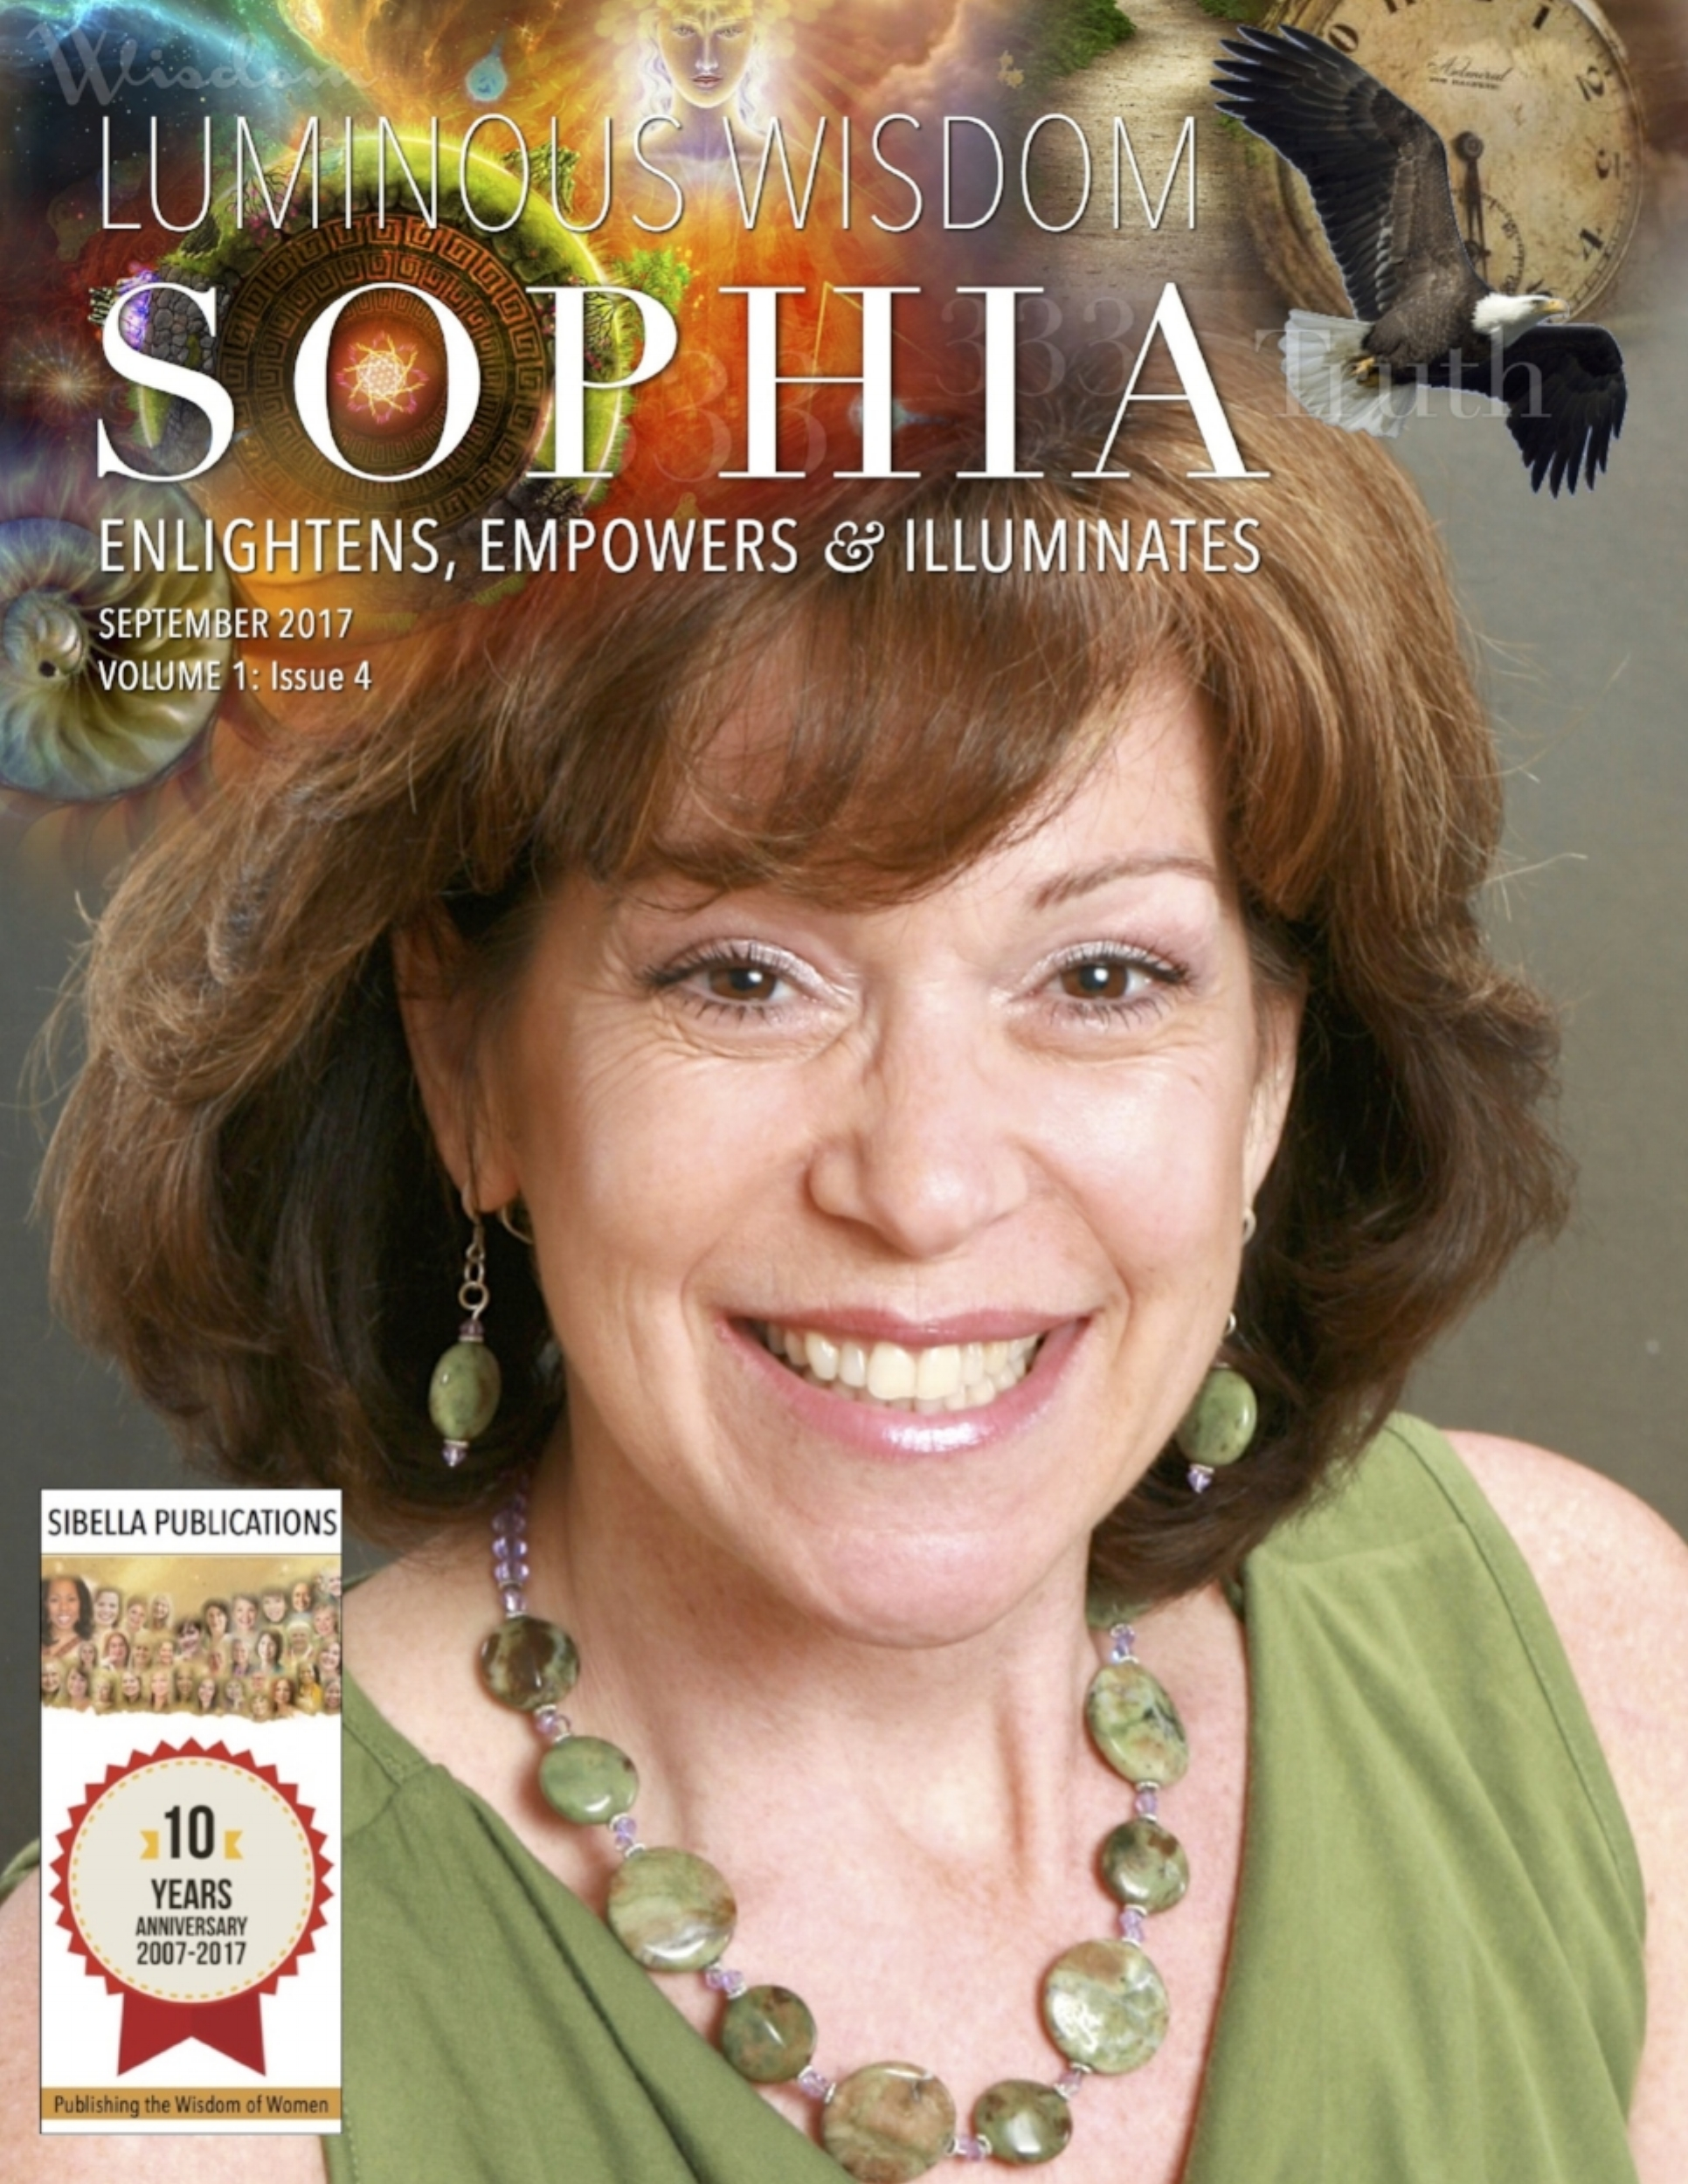 Luminous Wisdom | Sophia Cover, September 2017 - Honored to be on the cover of this online global magazine that enlightens, empowers and illuminates.